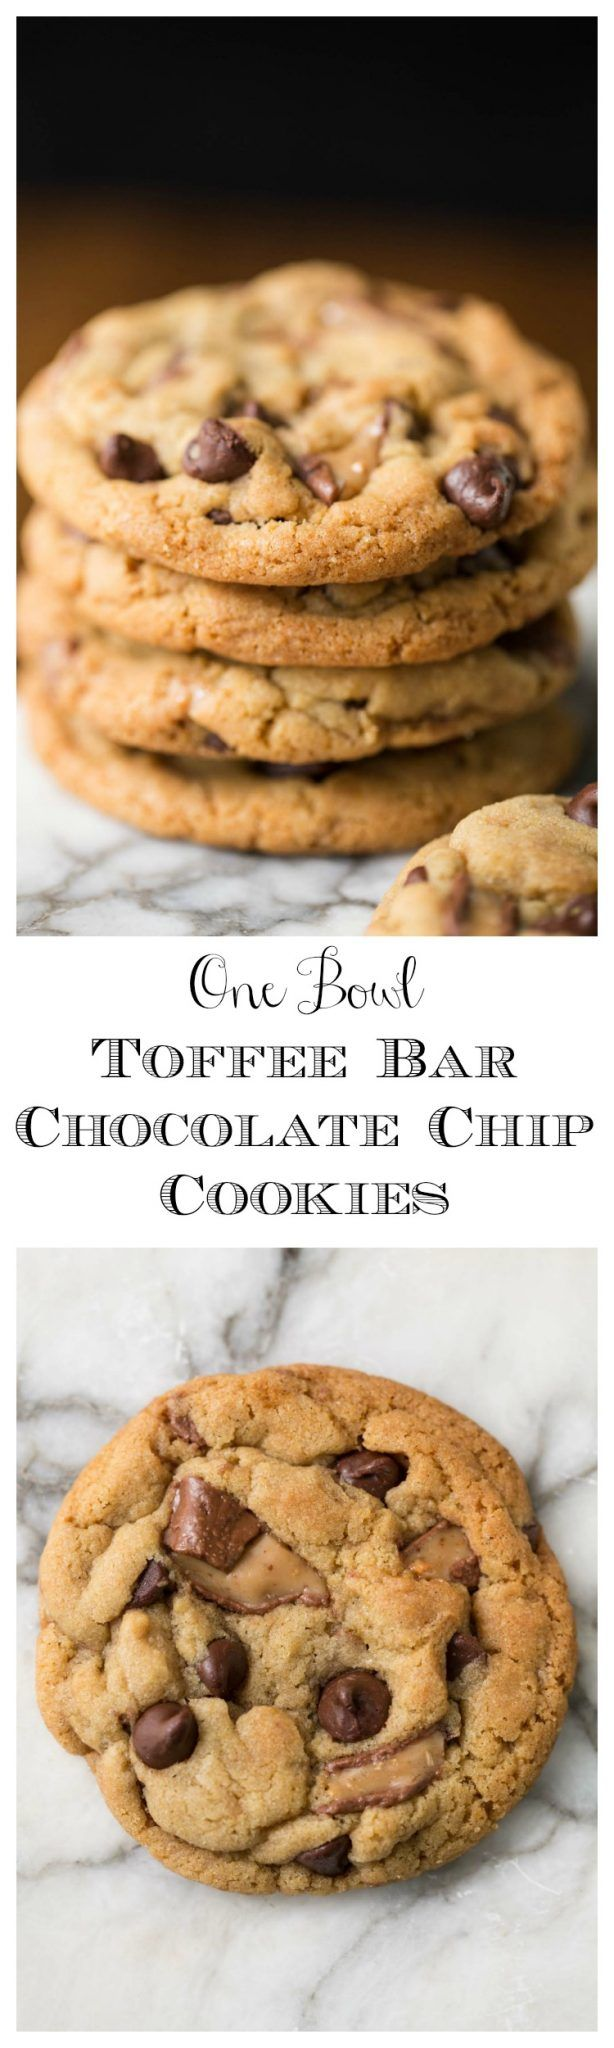 One Bowl Chocolate Chip Cookies - think one-bowl, no-mixer, super-easy, crazy-delicious cookies that look and taste like they came right from a fine bake shop are impossible? Nope, check it out!